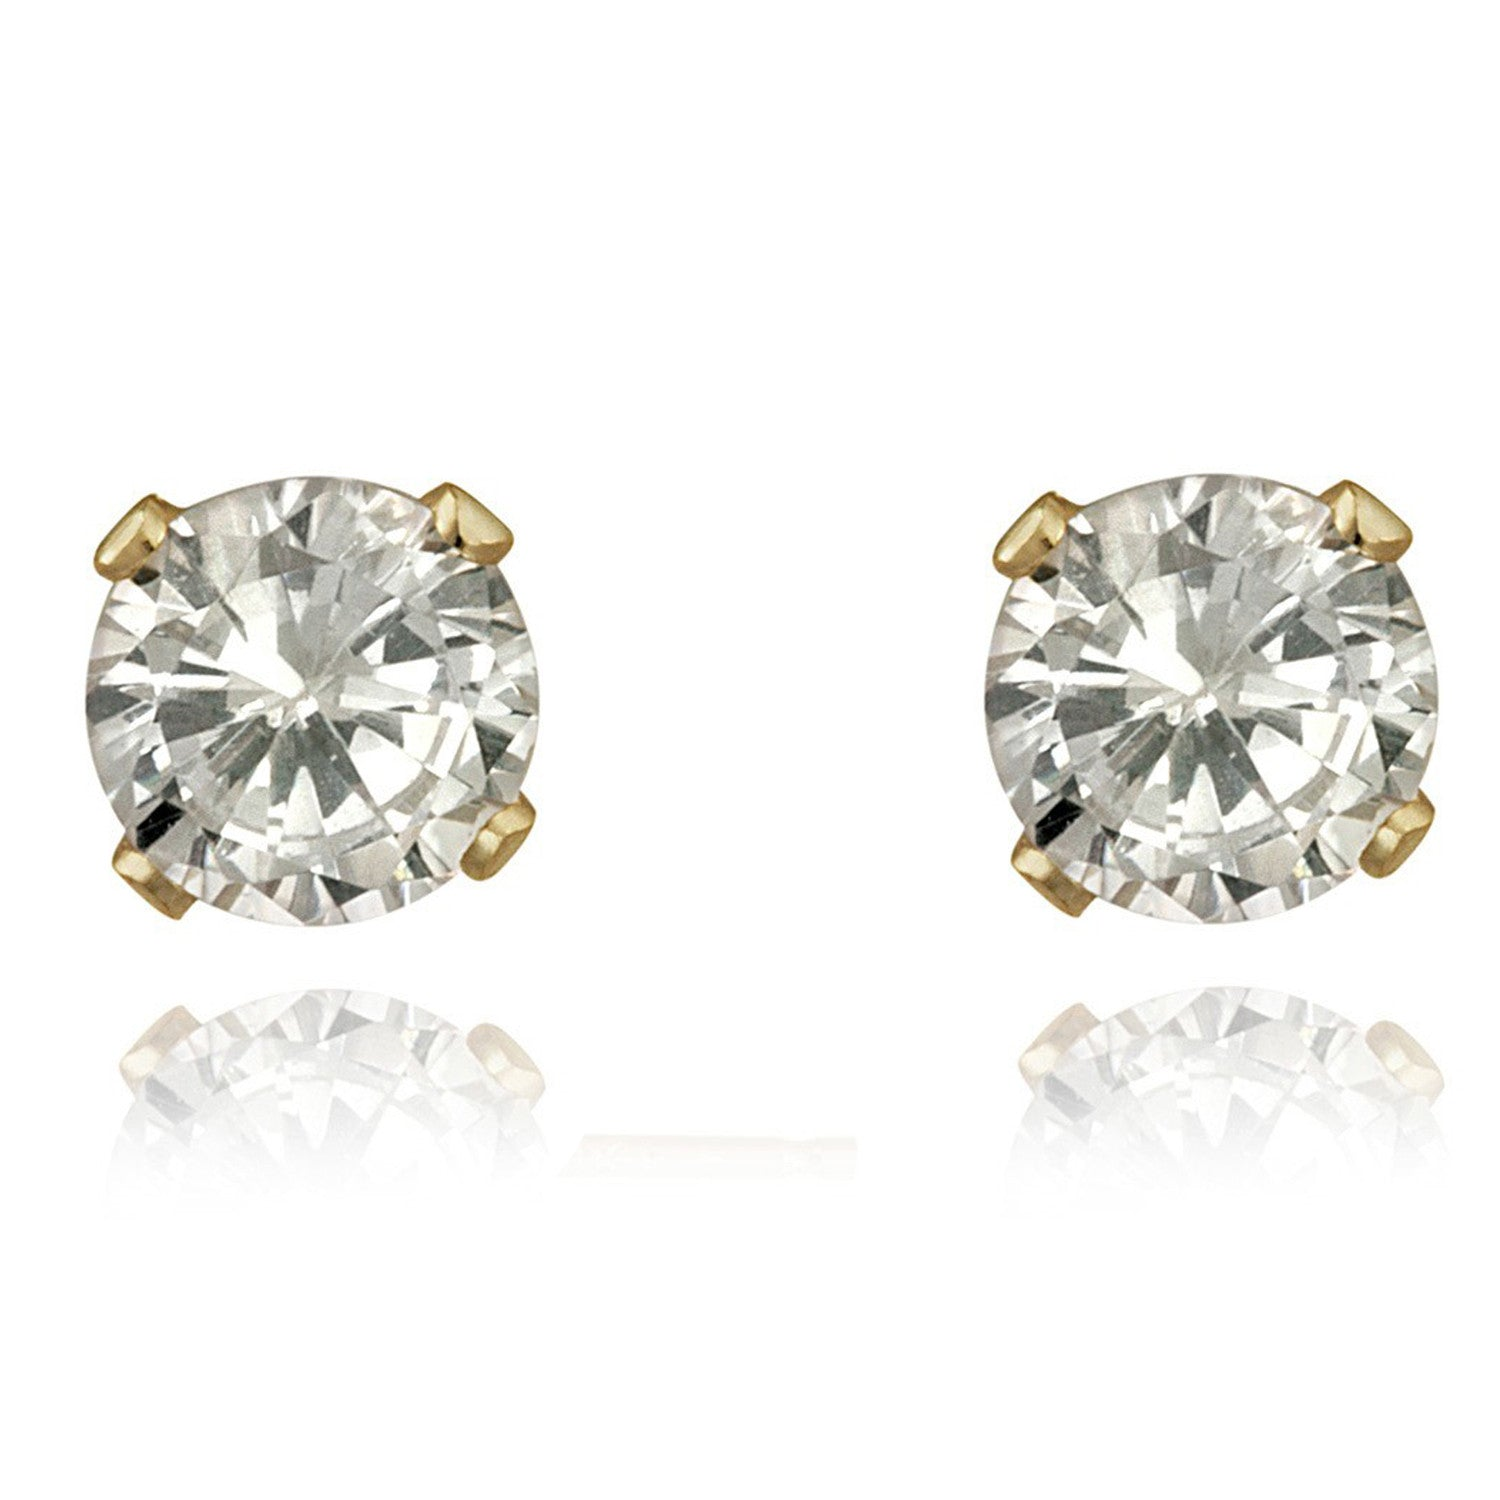 14k Gold Round Cubic Zirconia Butterfly Clasp Stud Earrings - 3mm